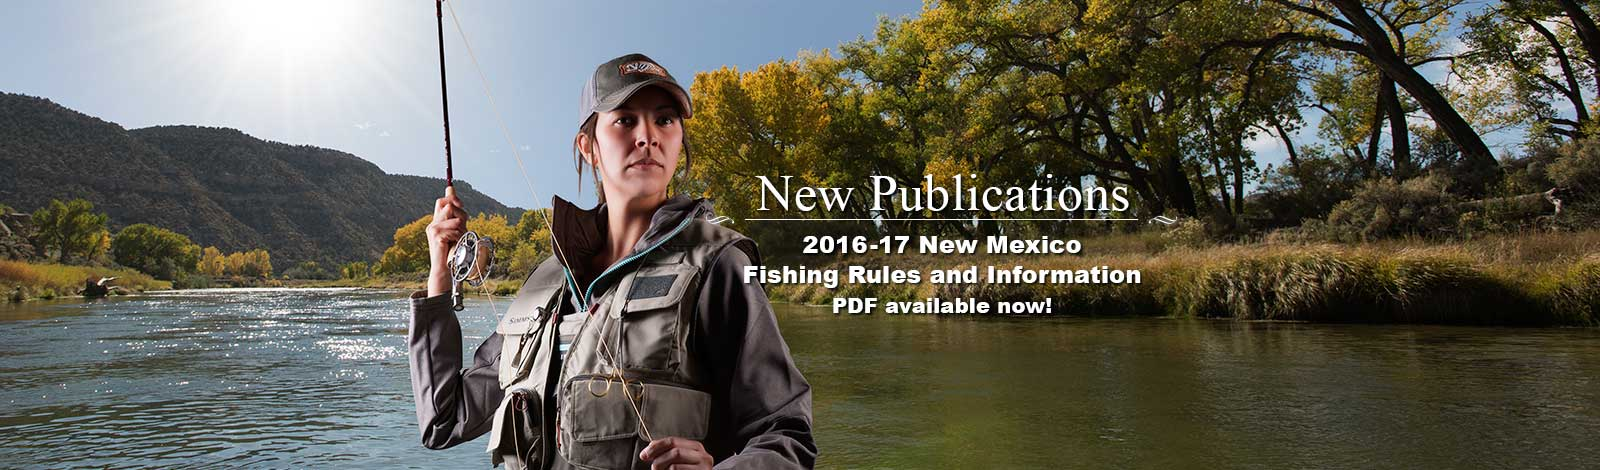 nmdgf new mexico department of game fish